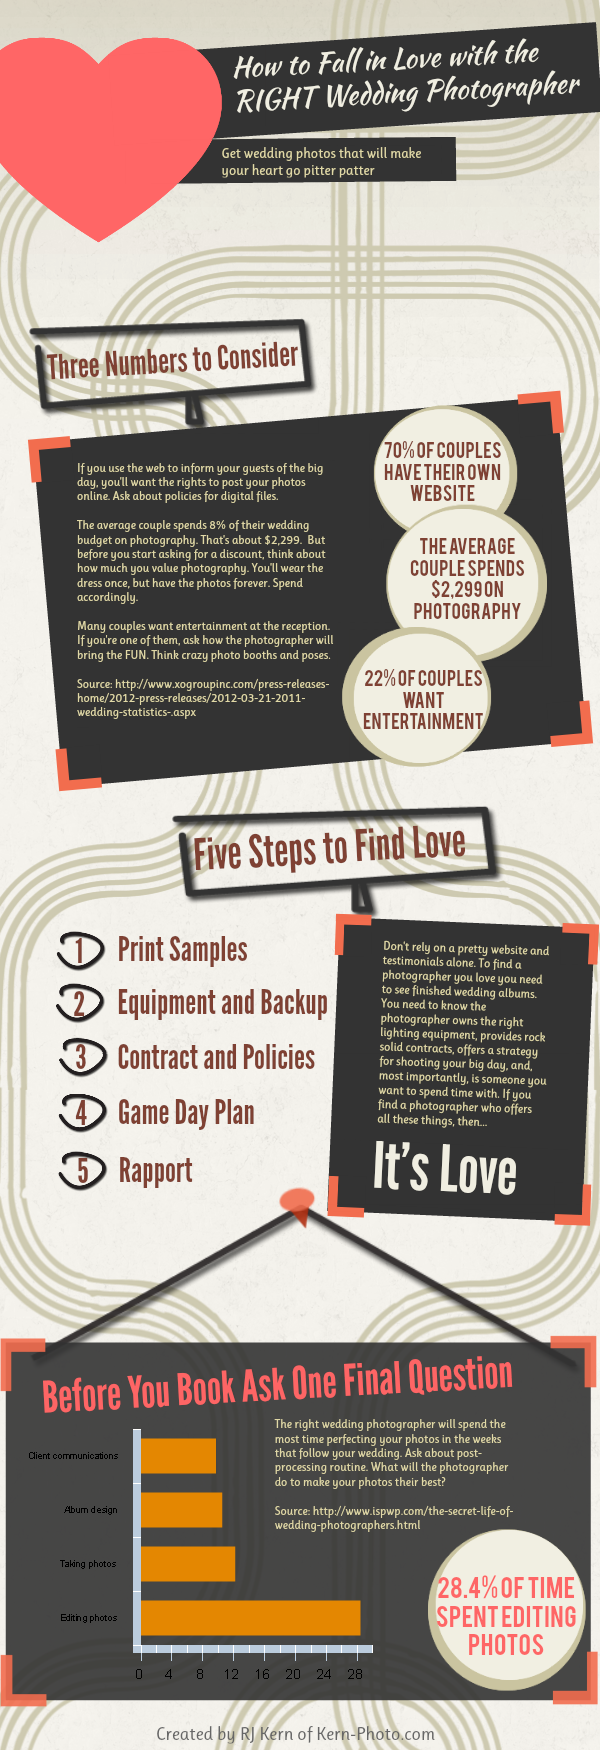 wpid-how-to-fall-in-love-right-wedding-photographer-2013-02-28-20-15.png